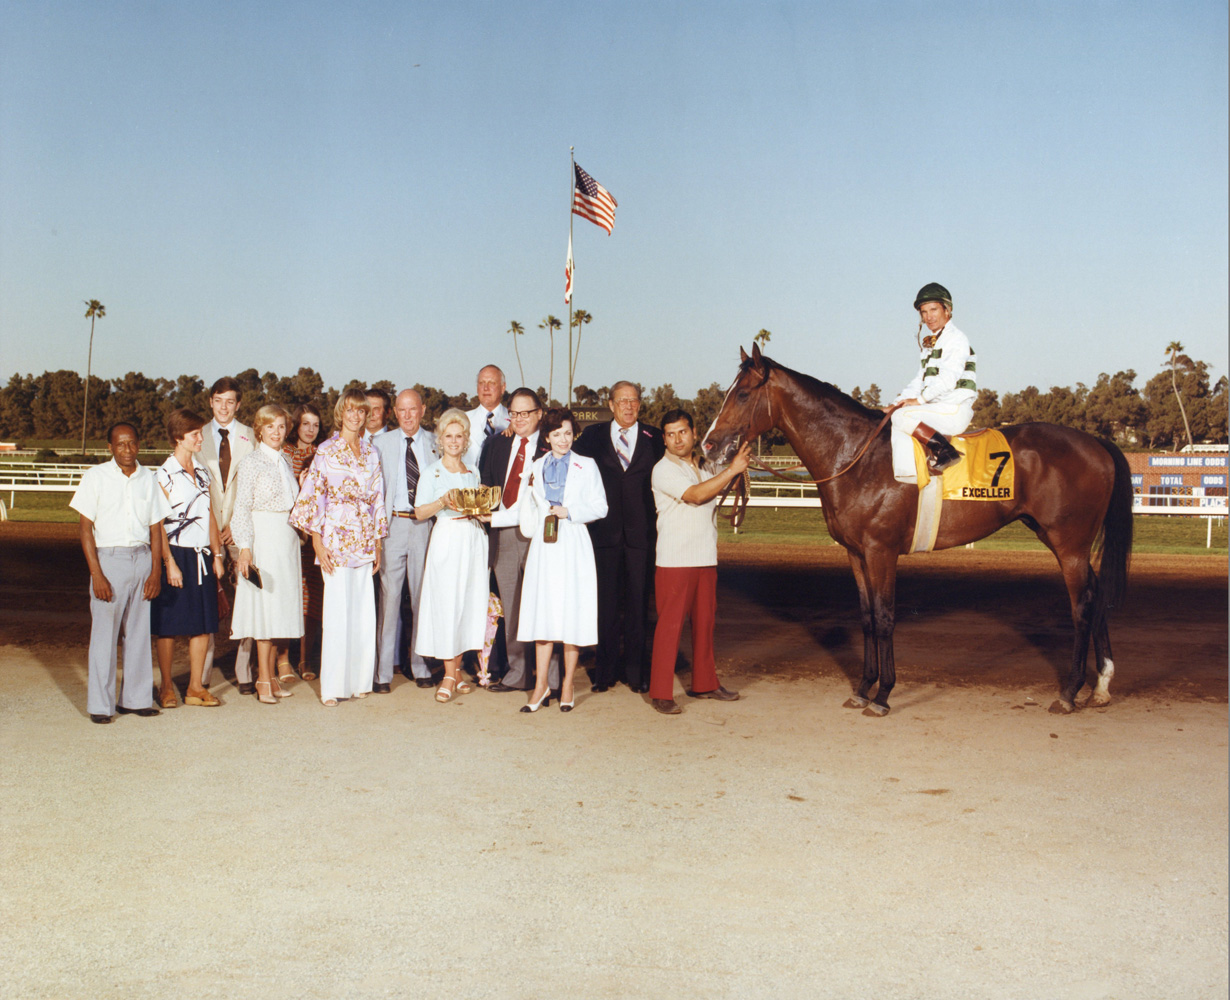 Winner's circle photo for the 1978 Hollywood Invitational Handicap, won by Exceller with Bill Shoemaker up (Hollywood Park Photo/Museum Collection)